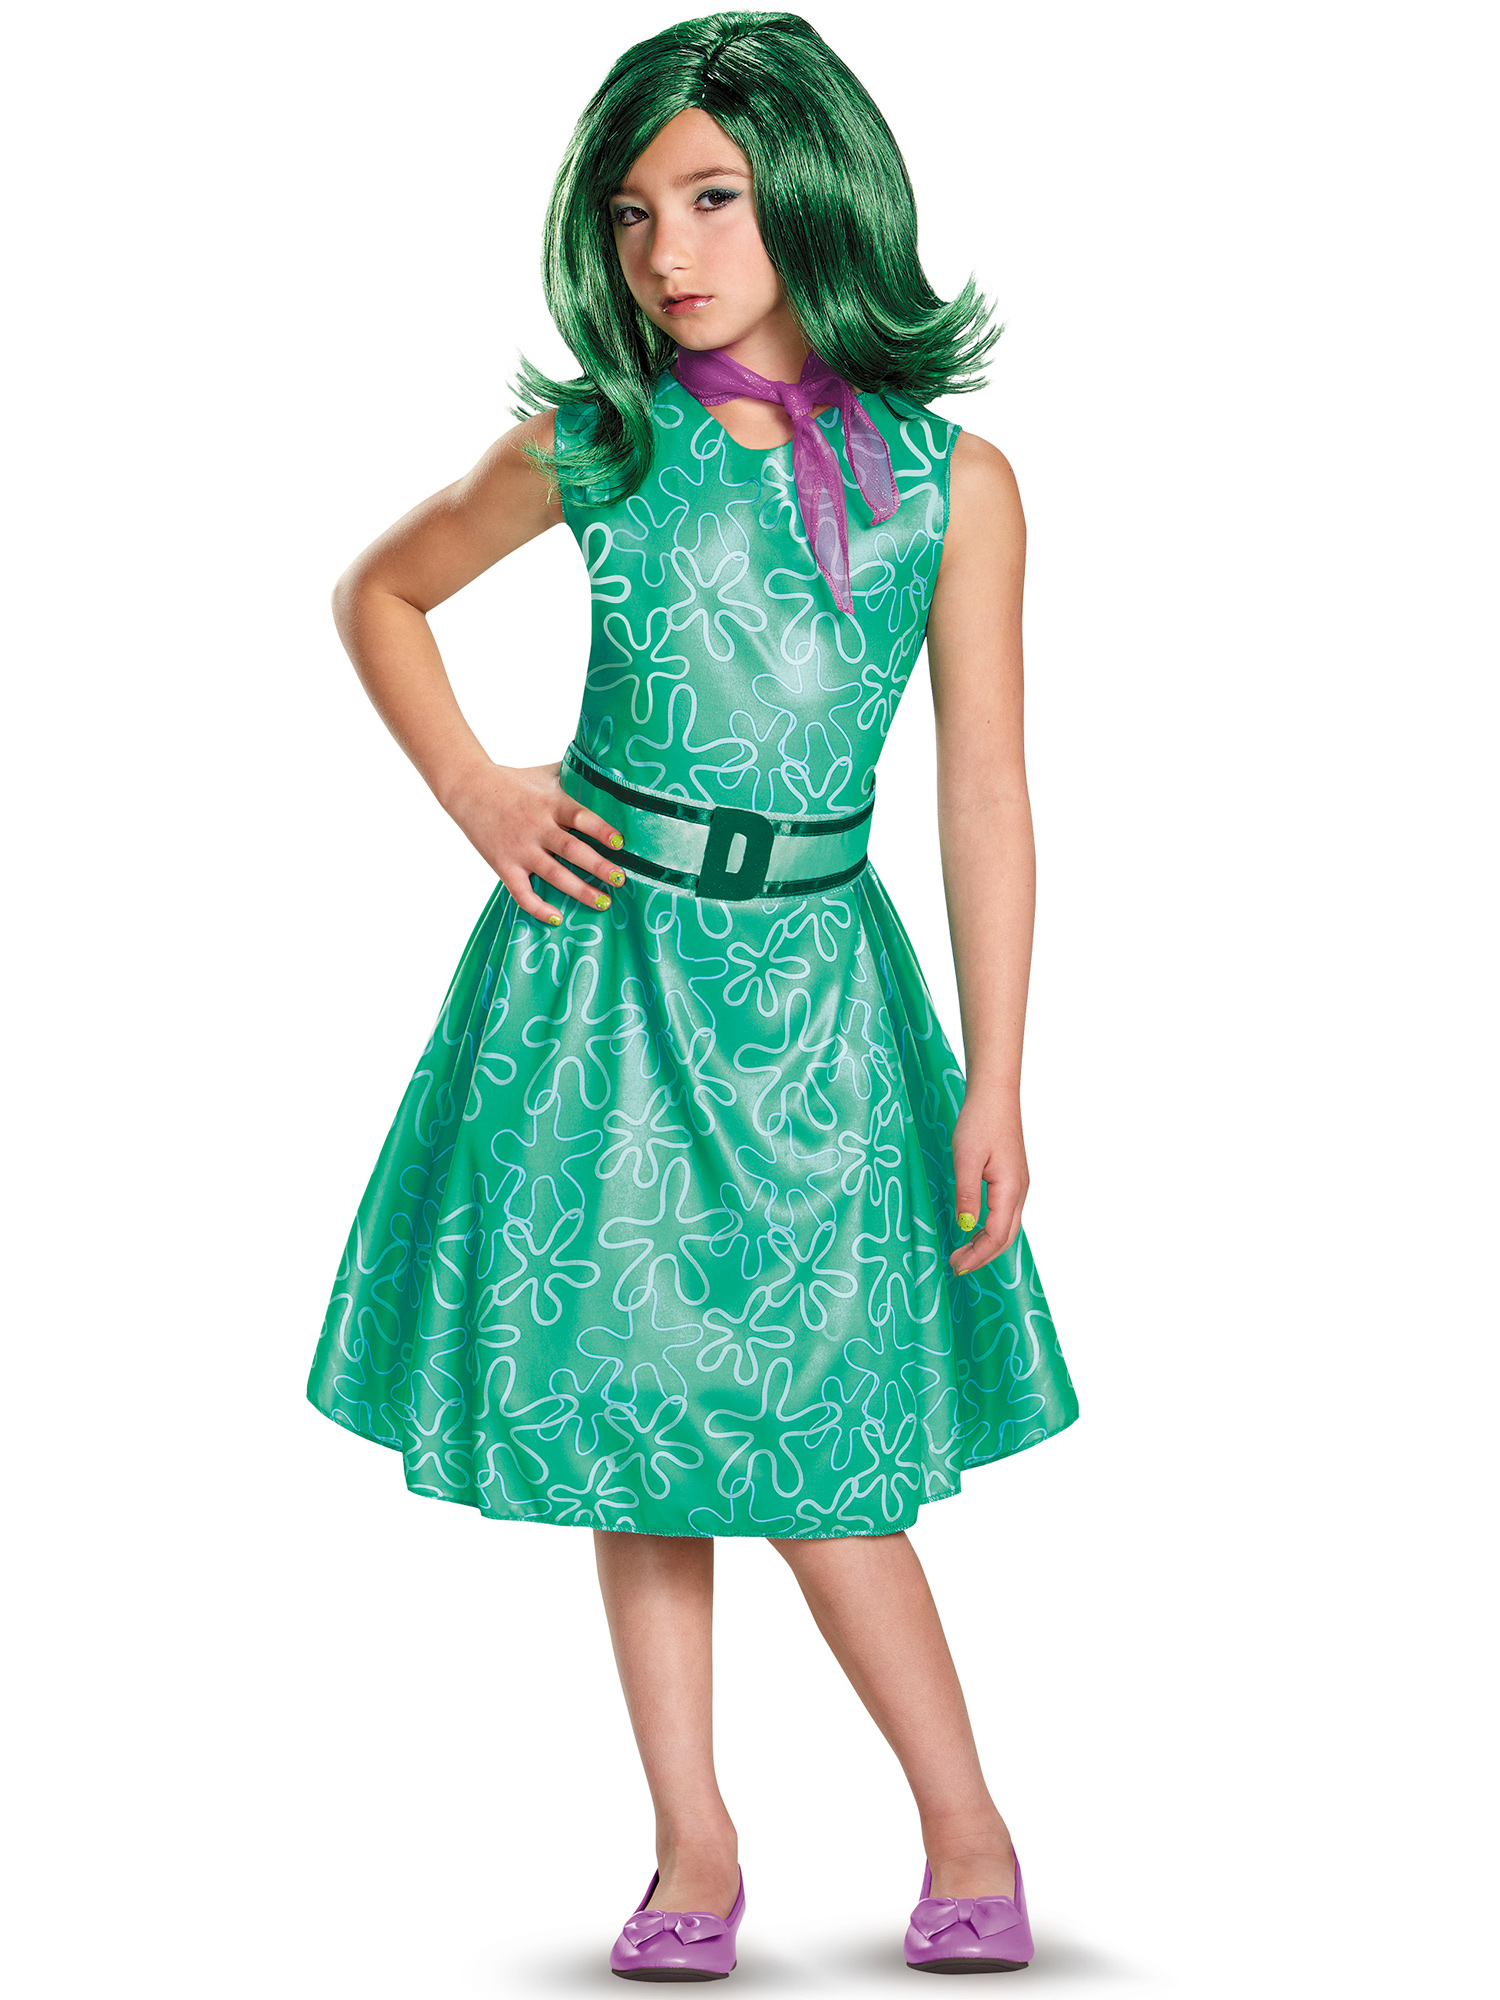 Inside Out Disgust Classic Girls Costume DI86940-L